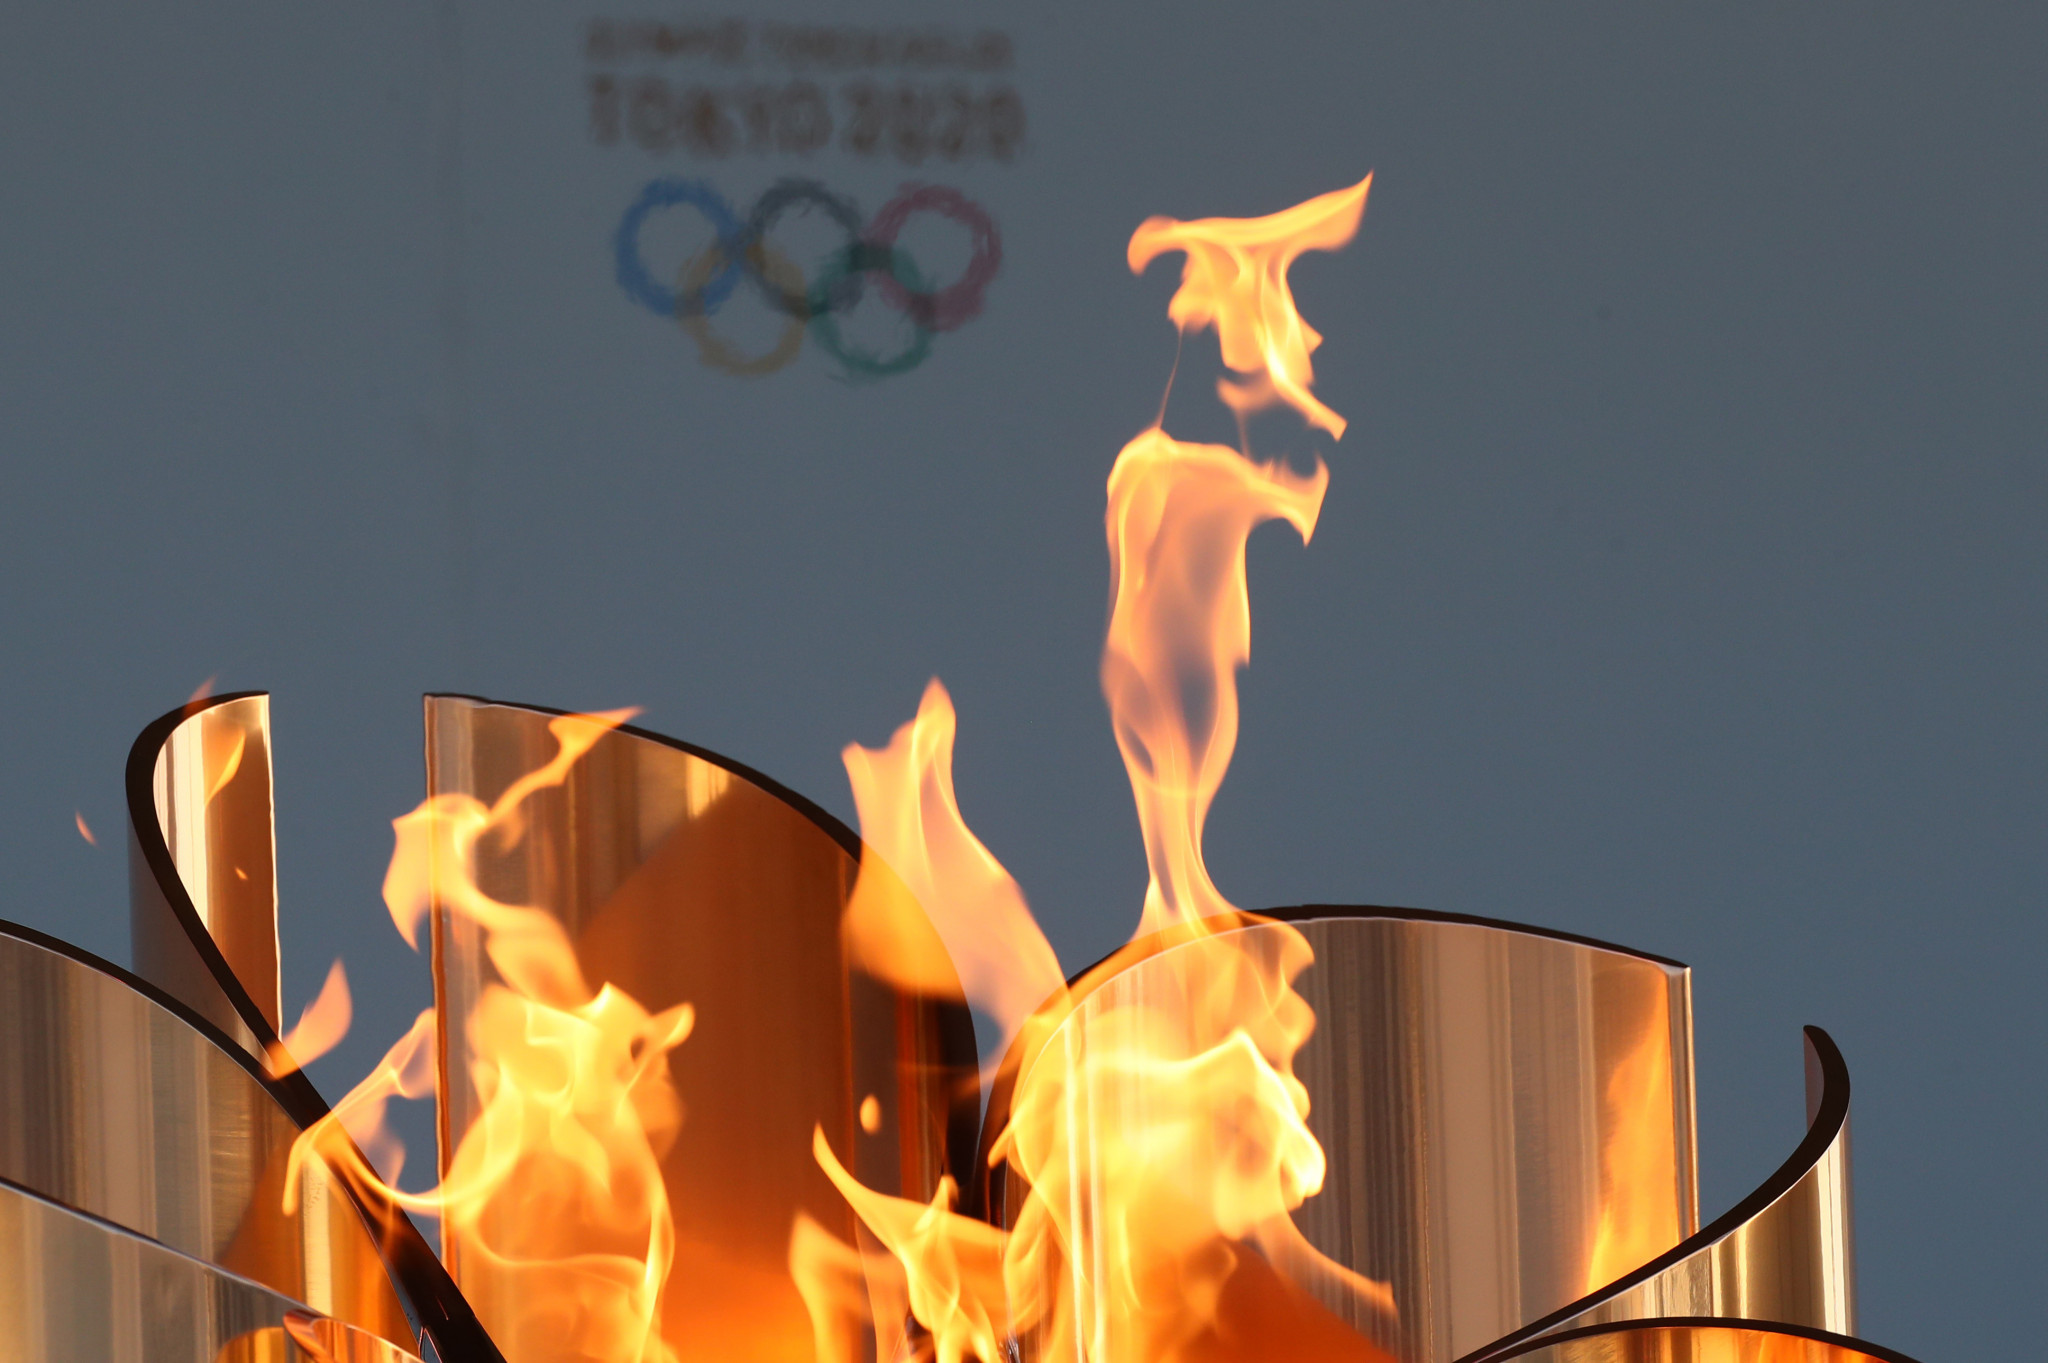 Rise in coronavirus cases forces postponement of Tokyo 2020 Olympic Torch exhibition